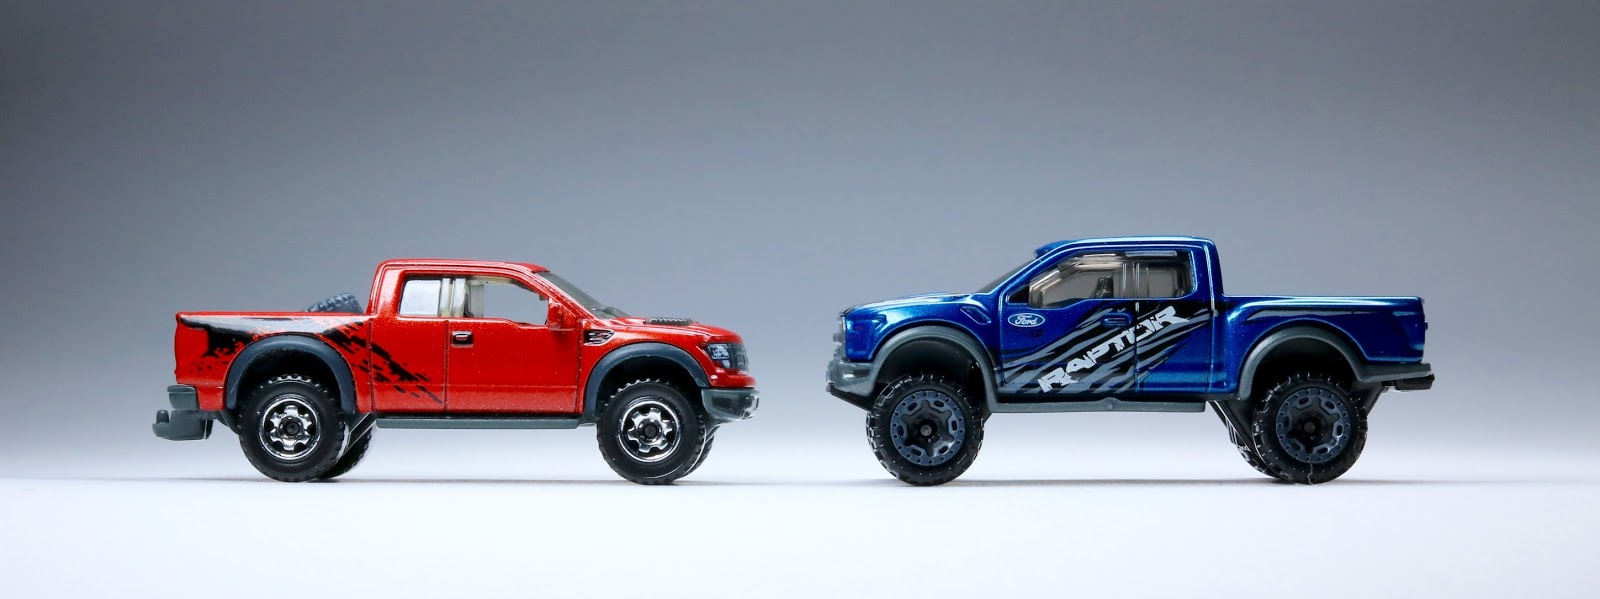 A tale of two the brand new hot wheels 17 ford raptor its i only have this one version of the matchbox and i dont anticipate getting more versions of the hot wheels replica after this one voltagebd Gallery